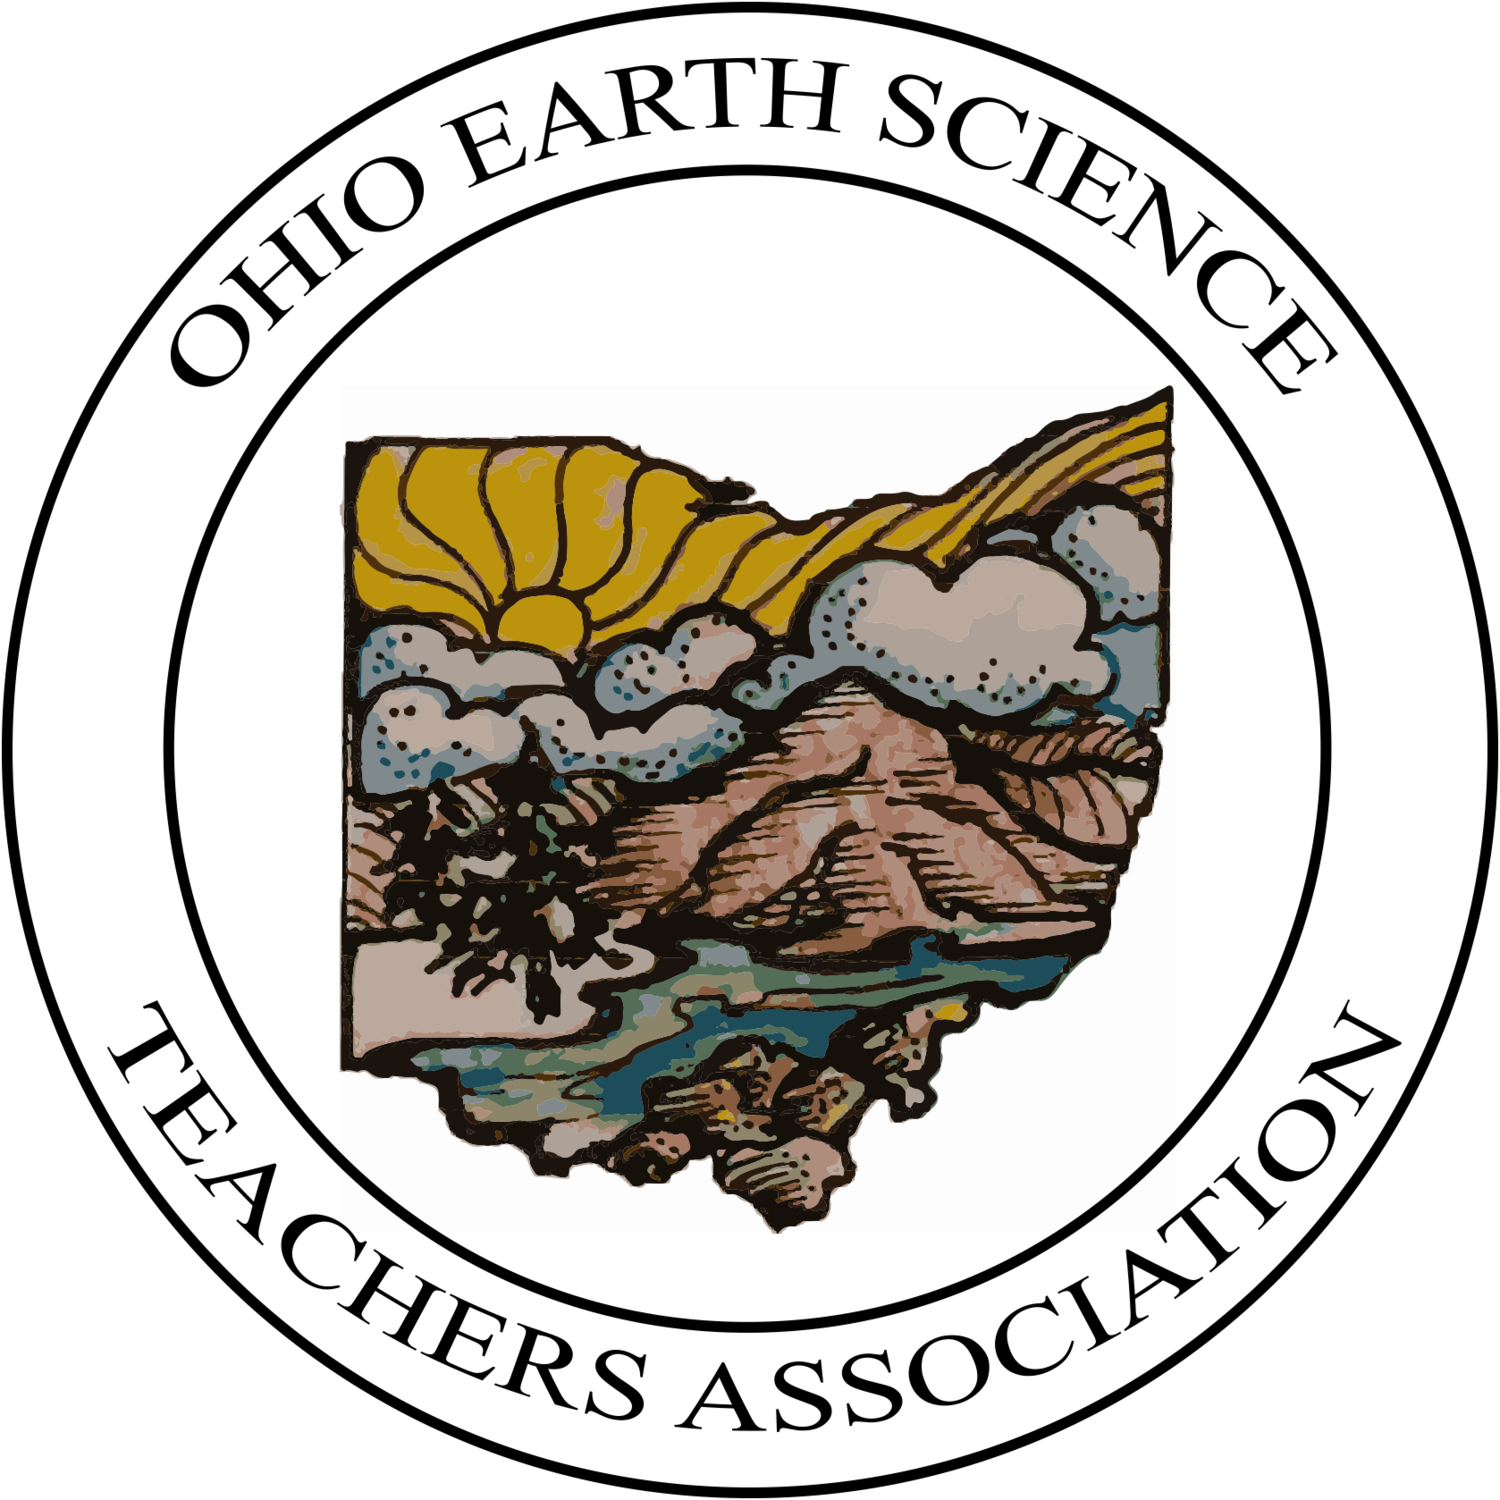 Standards — Ohio Earth Science Teachers Association